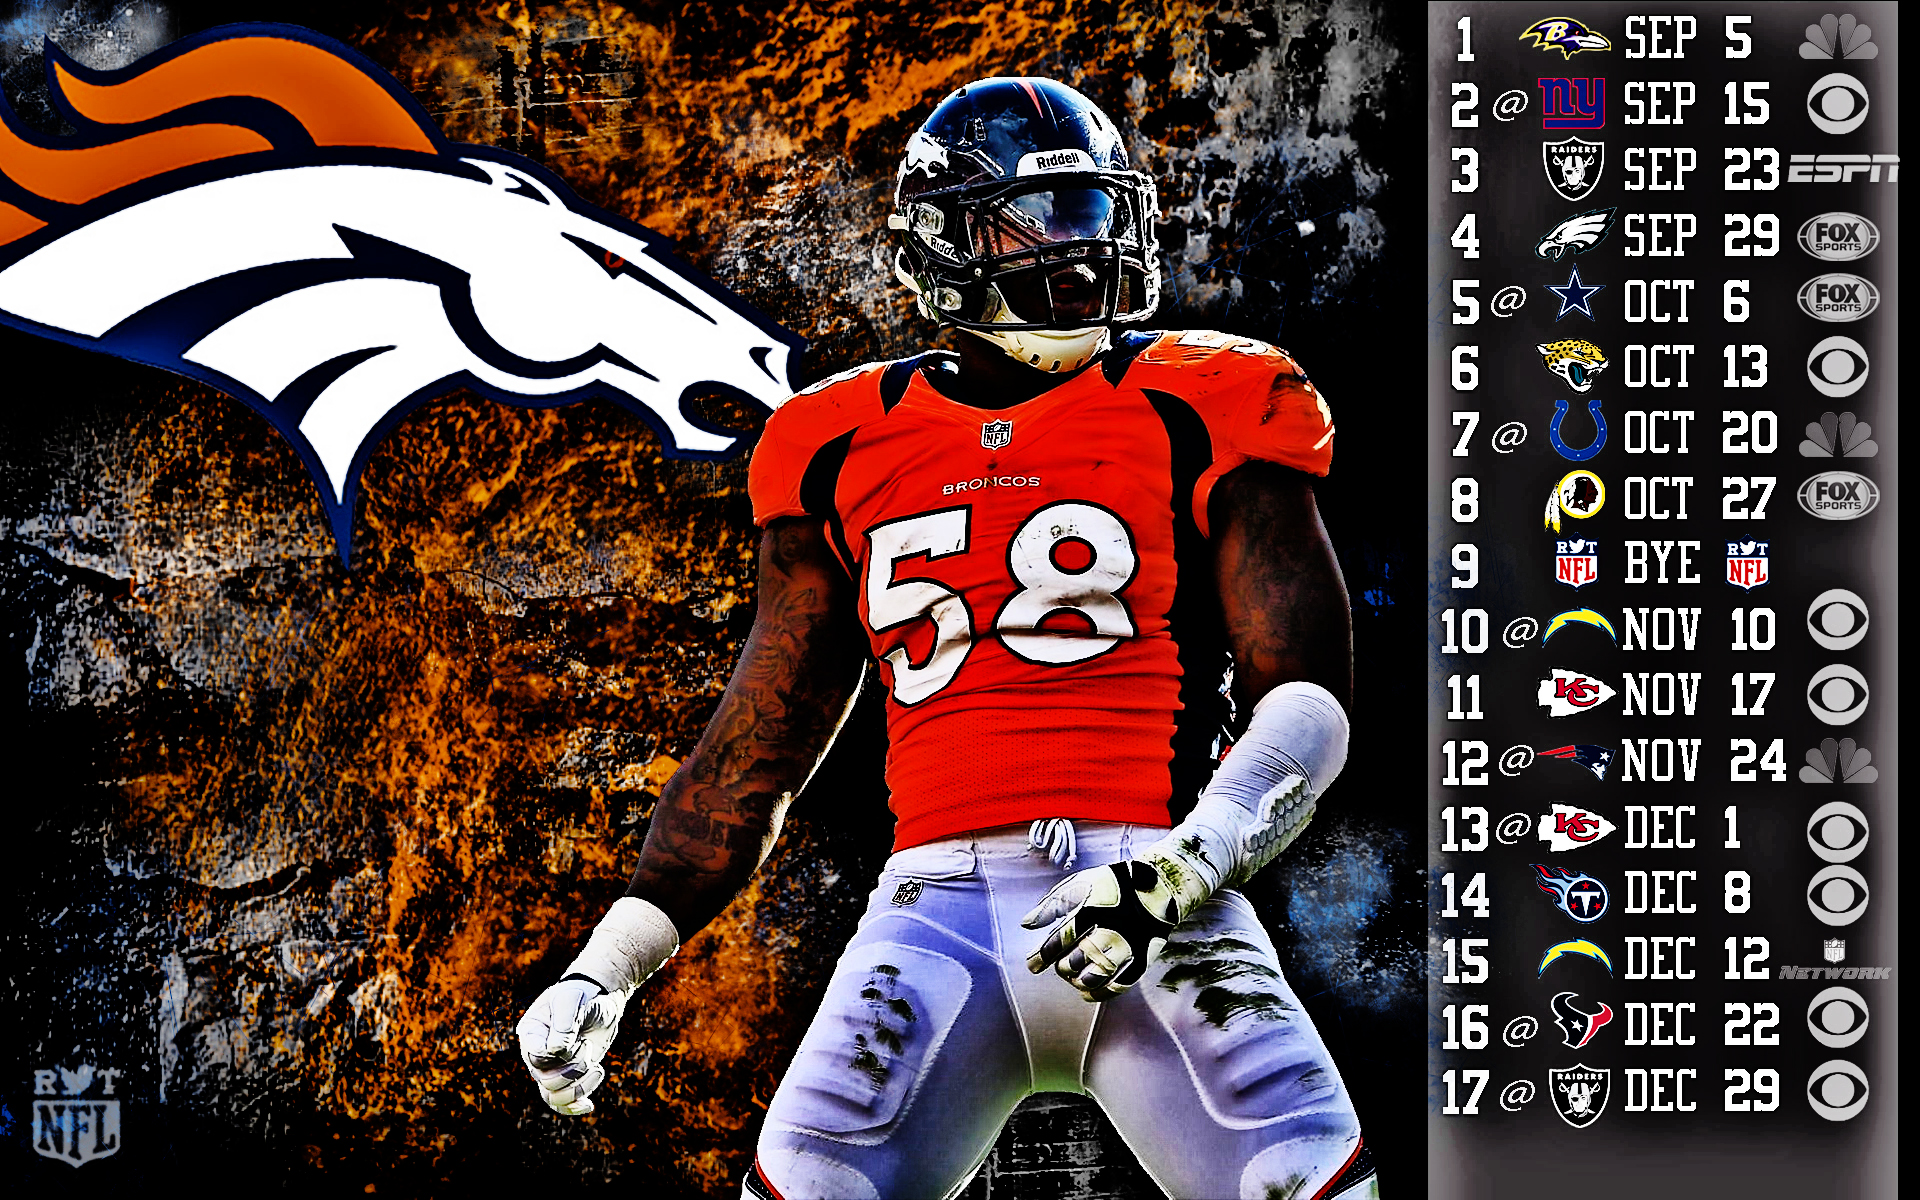 Denver broncos wallpaper hd impremedia denver broncos schedule wallpaper wallpapersafari voltagebd Image collections